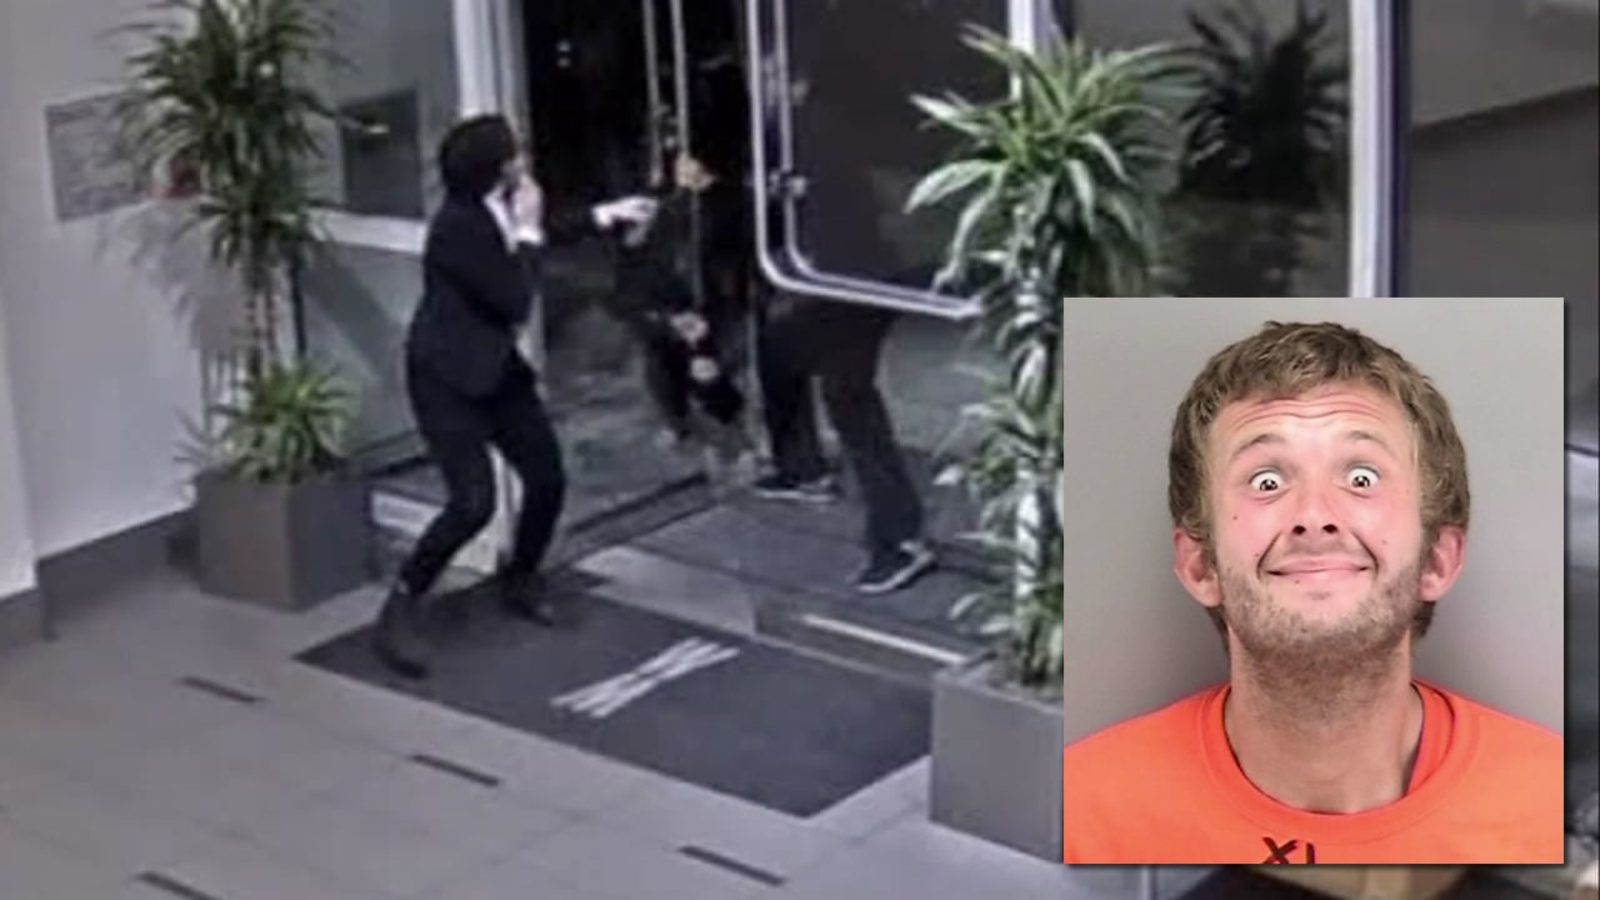 Judge has public safety concerns after seeing video of woman attacked in San Francisco